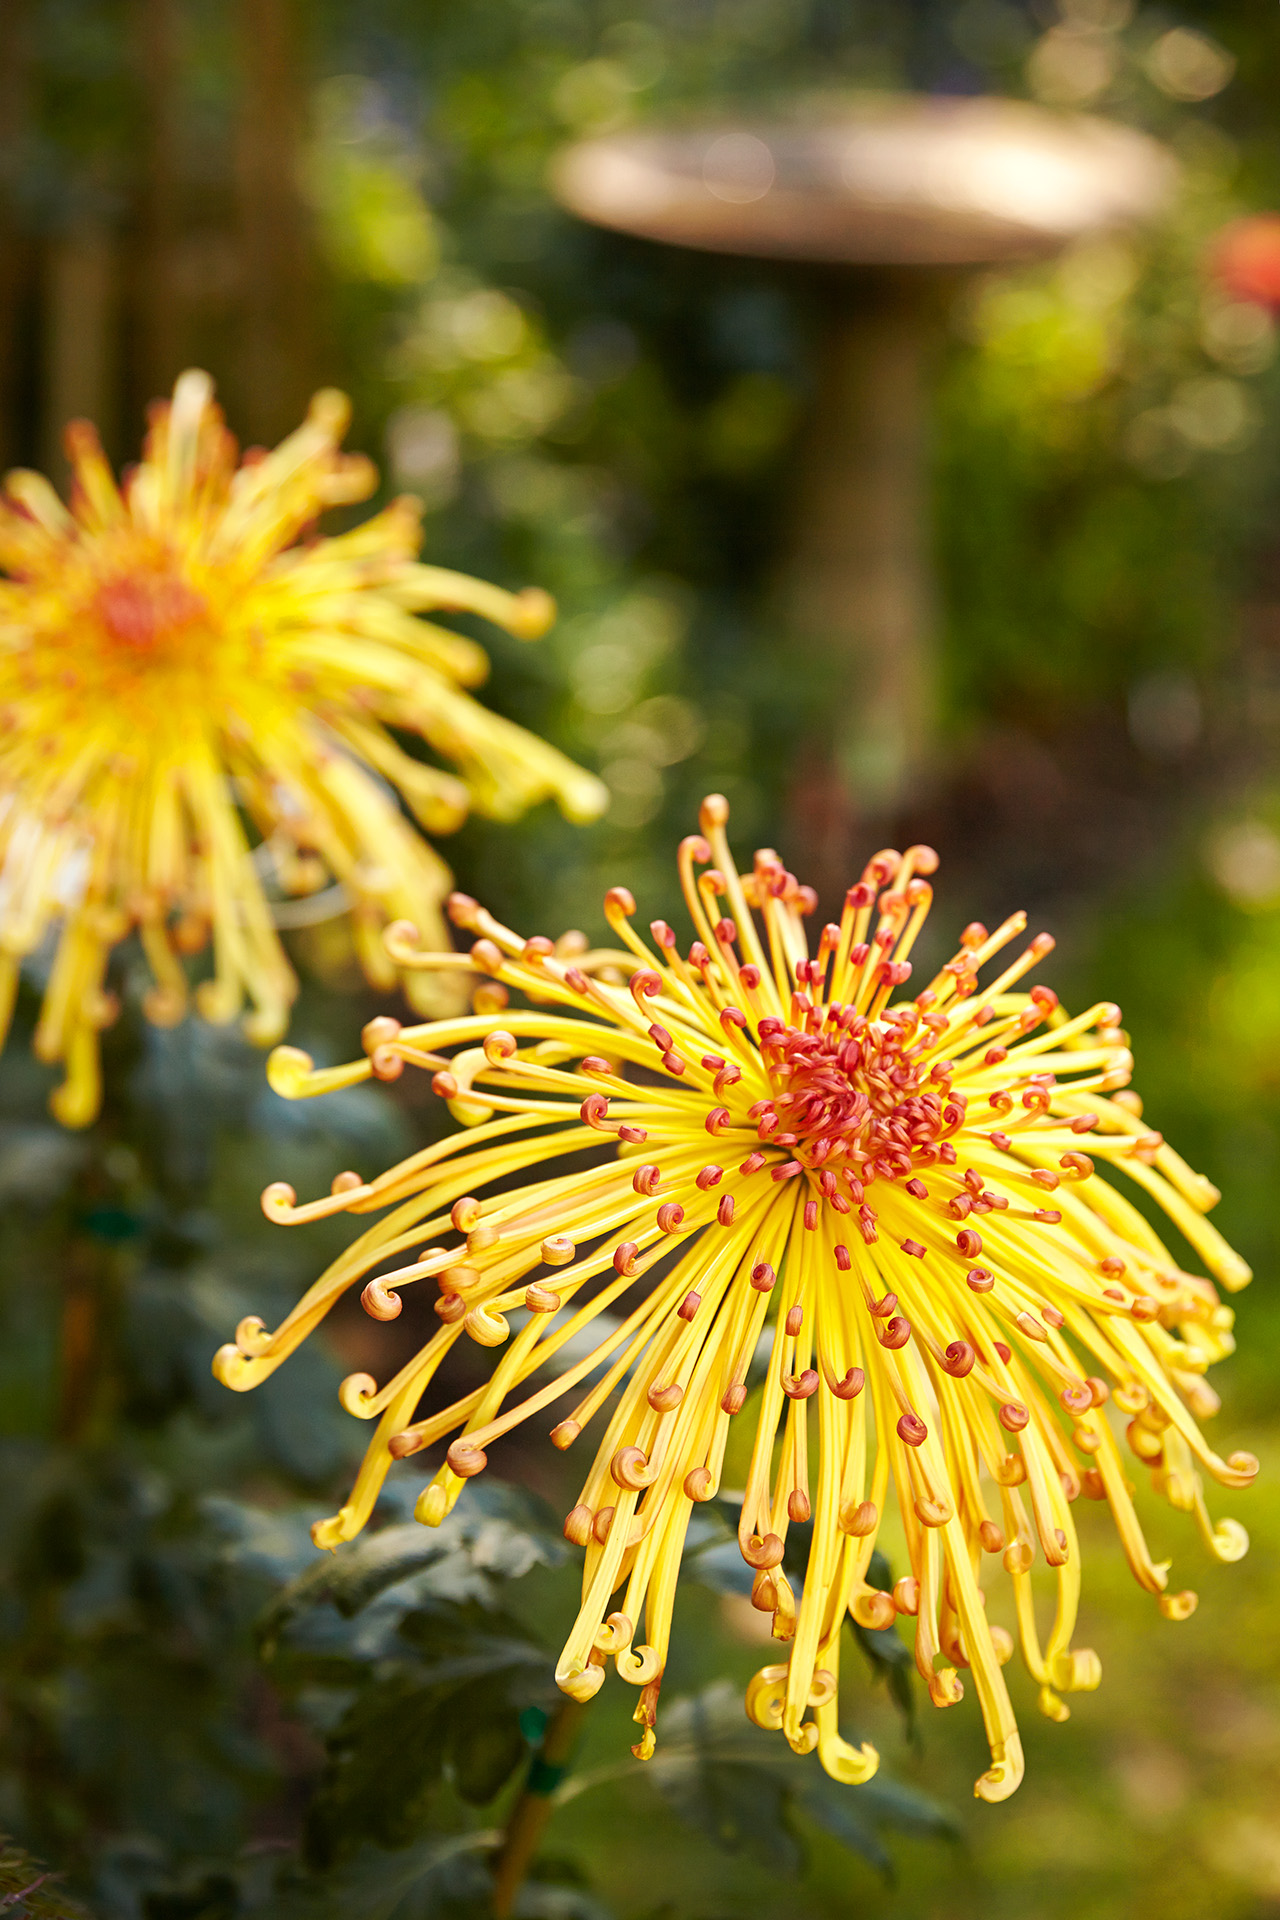 yellow spider chrysanthemum 'Lava' variation